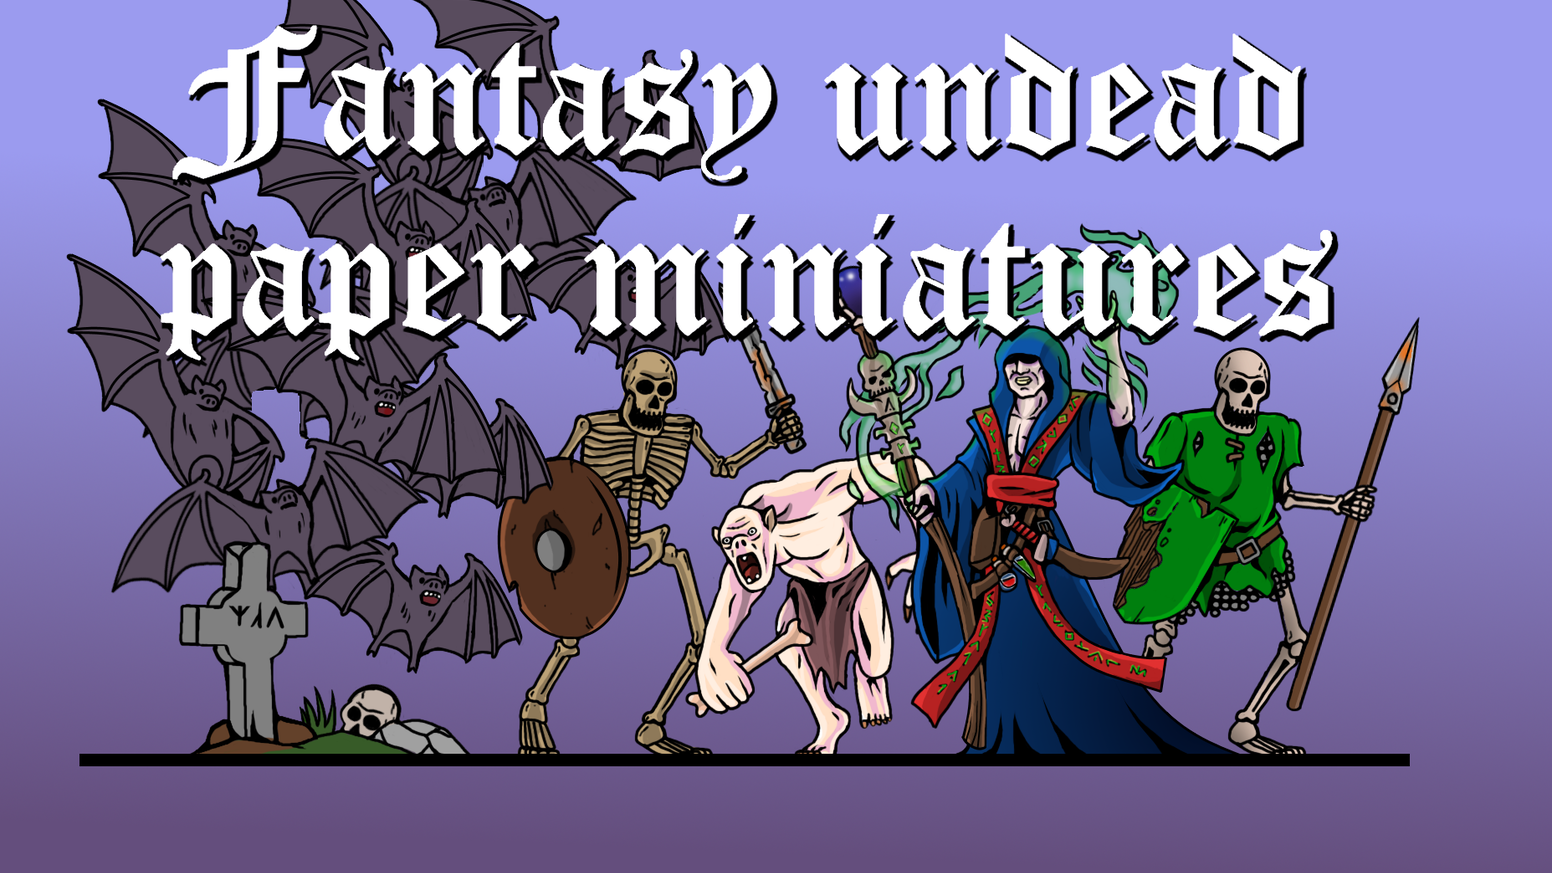 28mm undead paper miniatures of monsters skeletons and more for your fantasy wargames and rpg